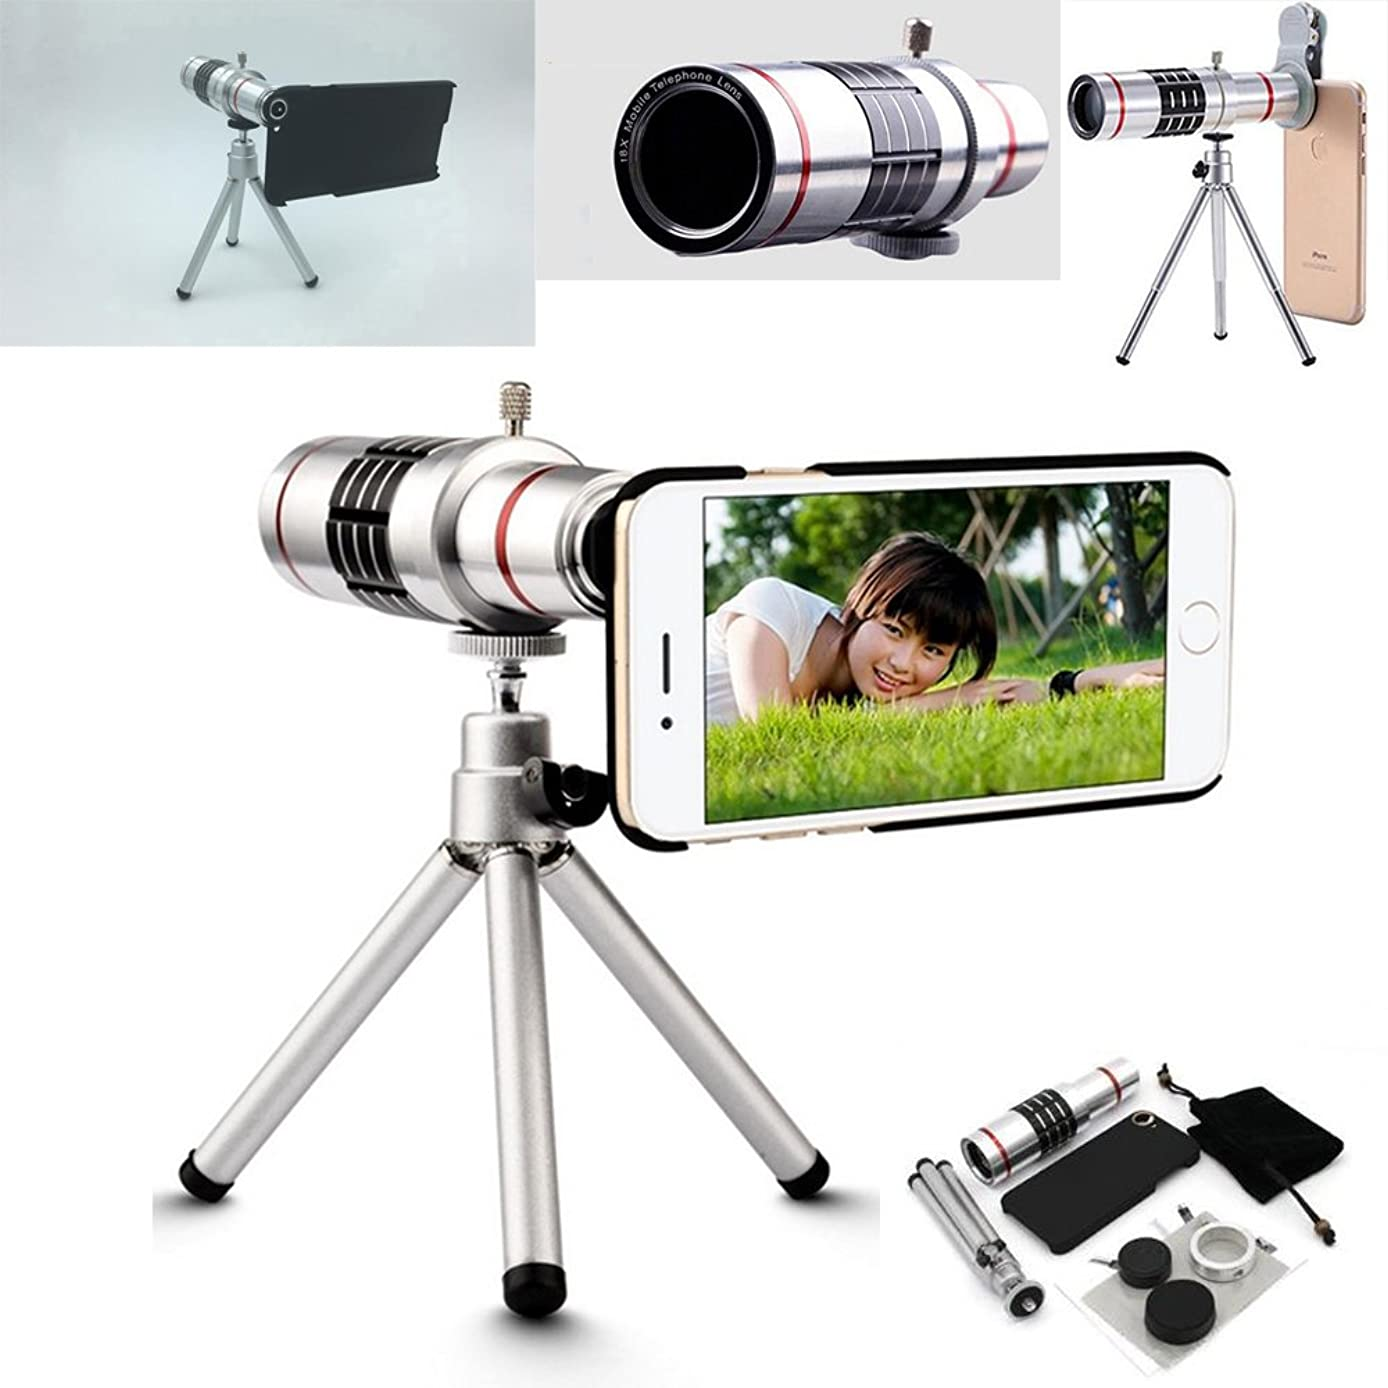 18X Profession iPhone Telephoto Lens, Aluminum Body Zoom Optical Telescope Camera Lens With Tripod Kit + Back Case + Universal Holder Clip For iPhone X 8 7 5 6s Plus (For iPhone 7/8 (4.7 inch))